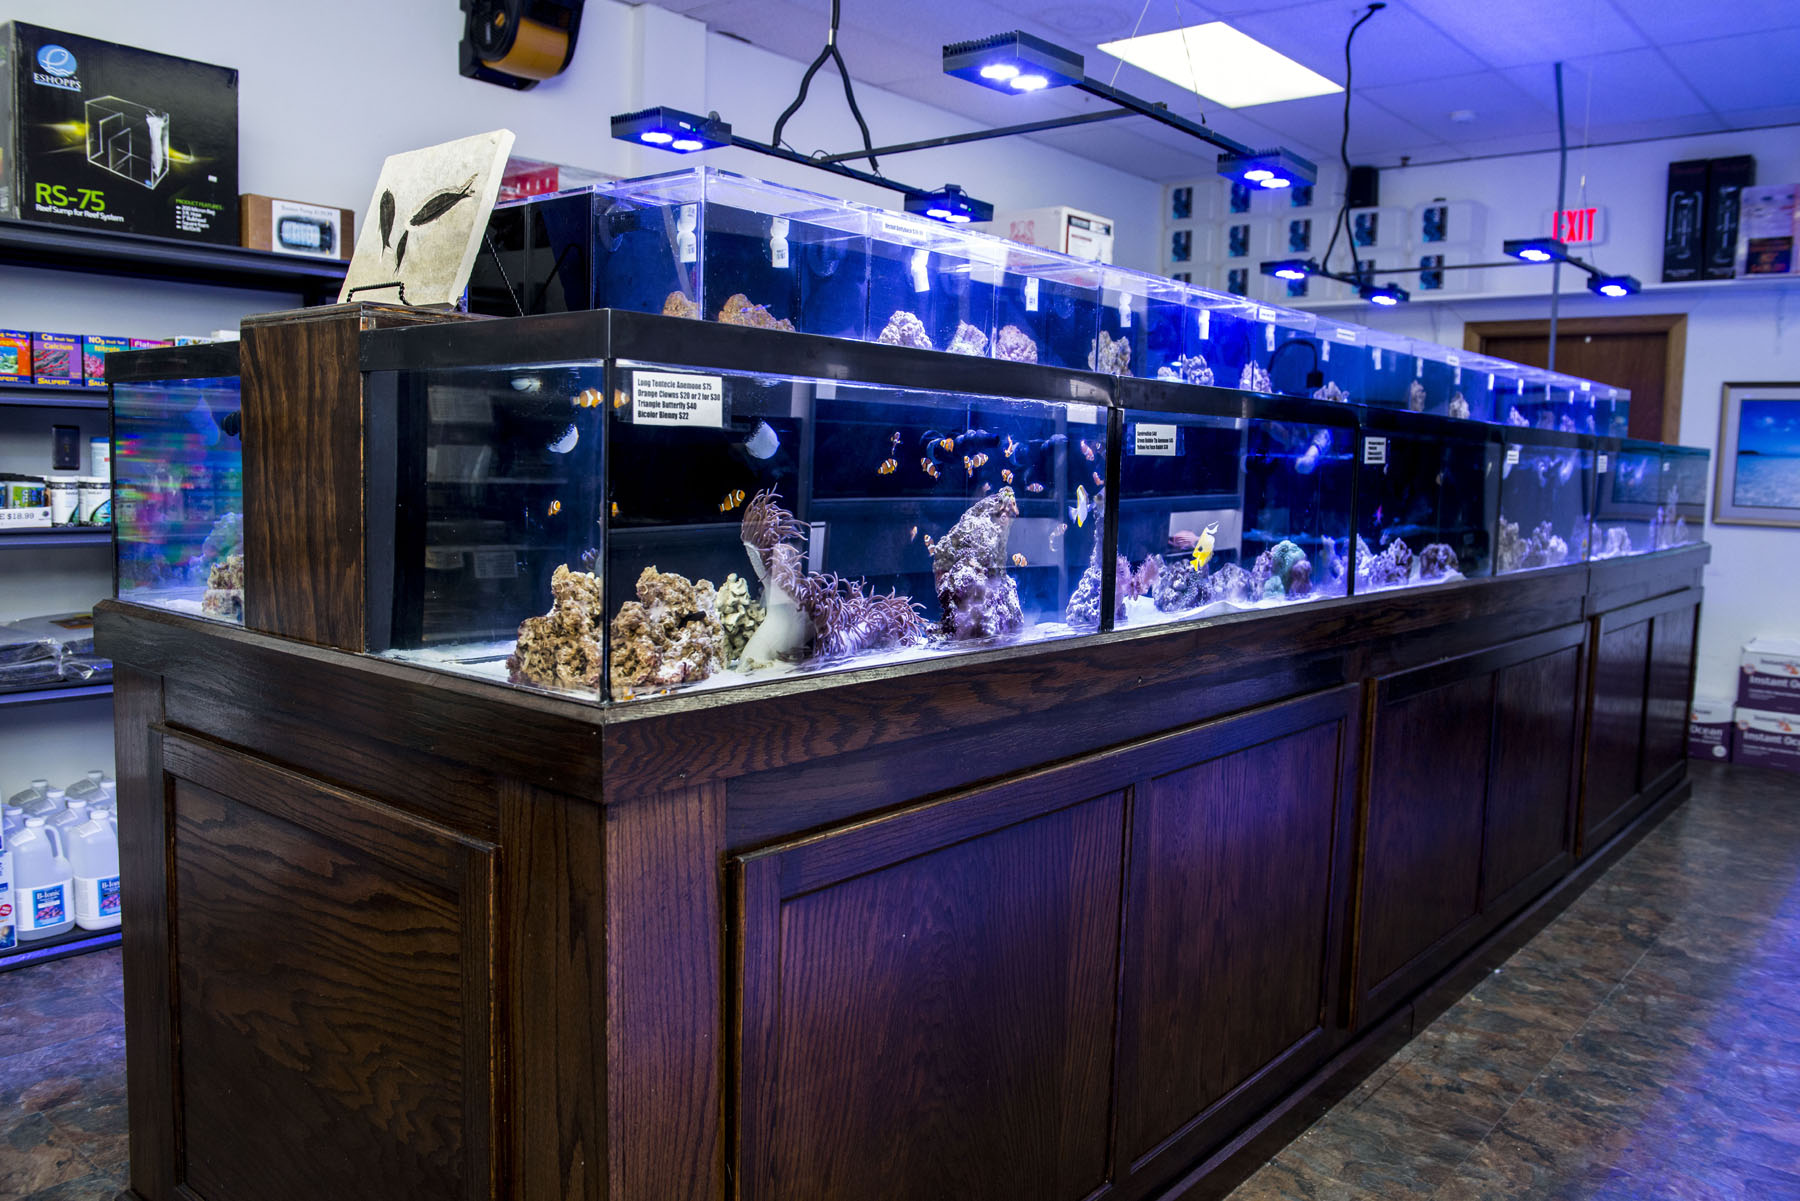 Reef plus north aurora il for Fish stores around me